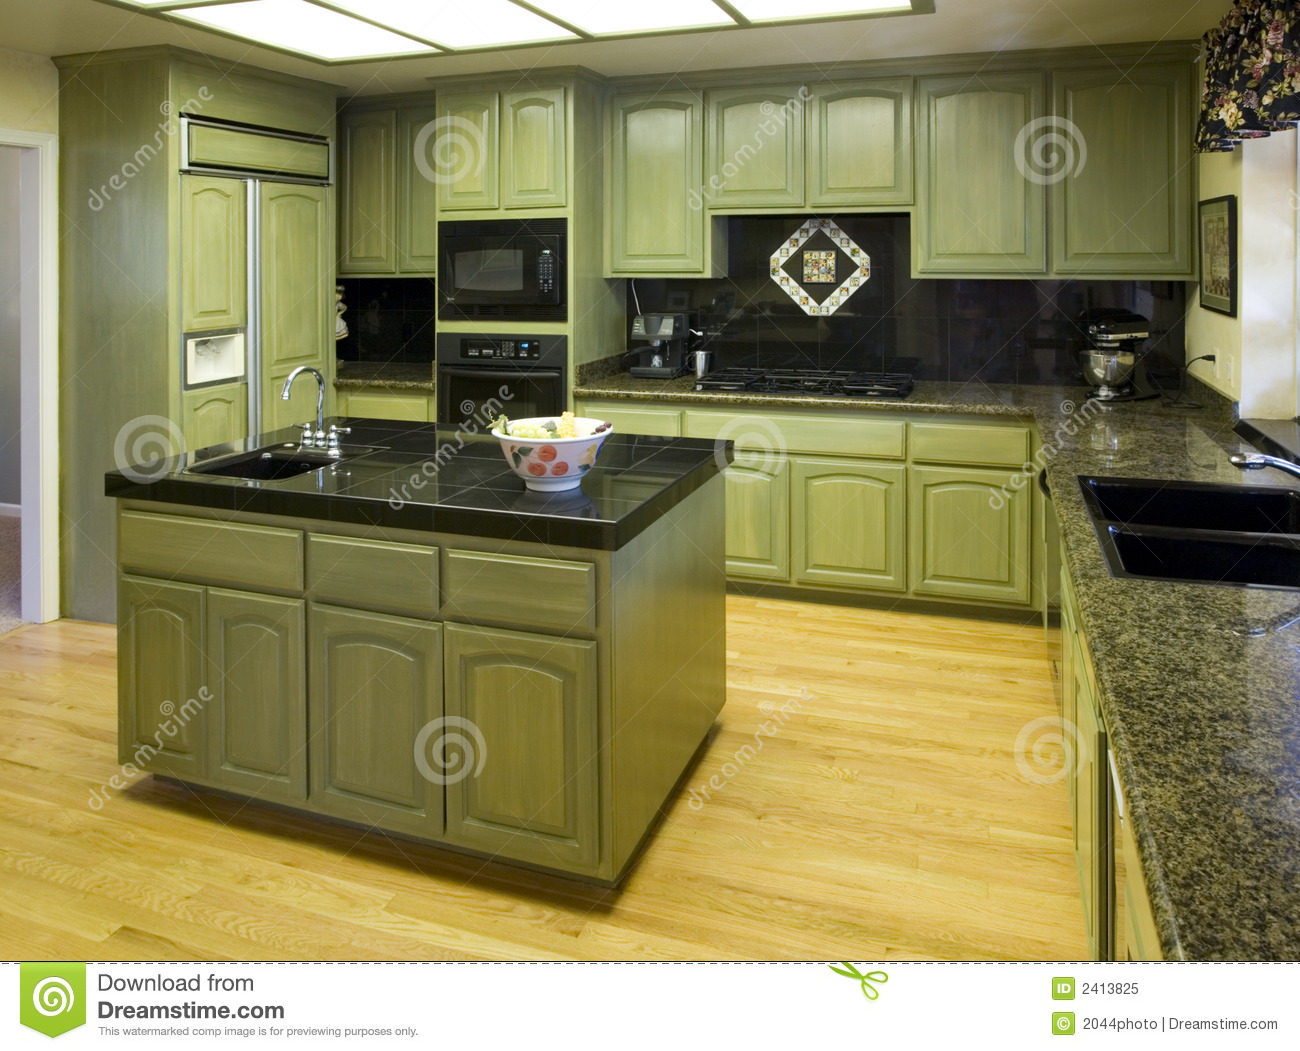 green kitchen pictures suburban residential kitchen stock image image of 1424